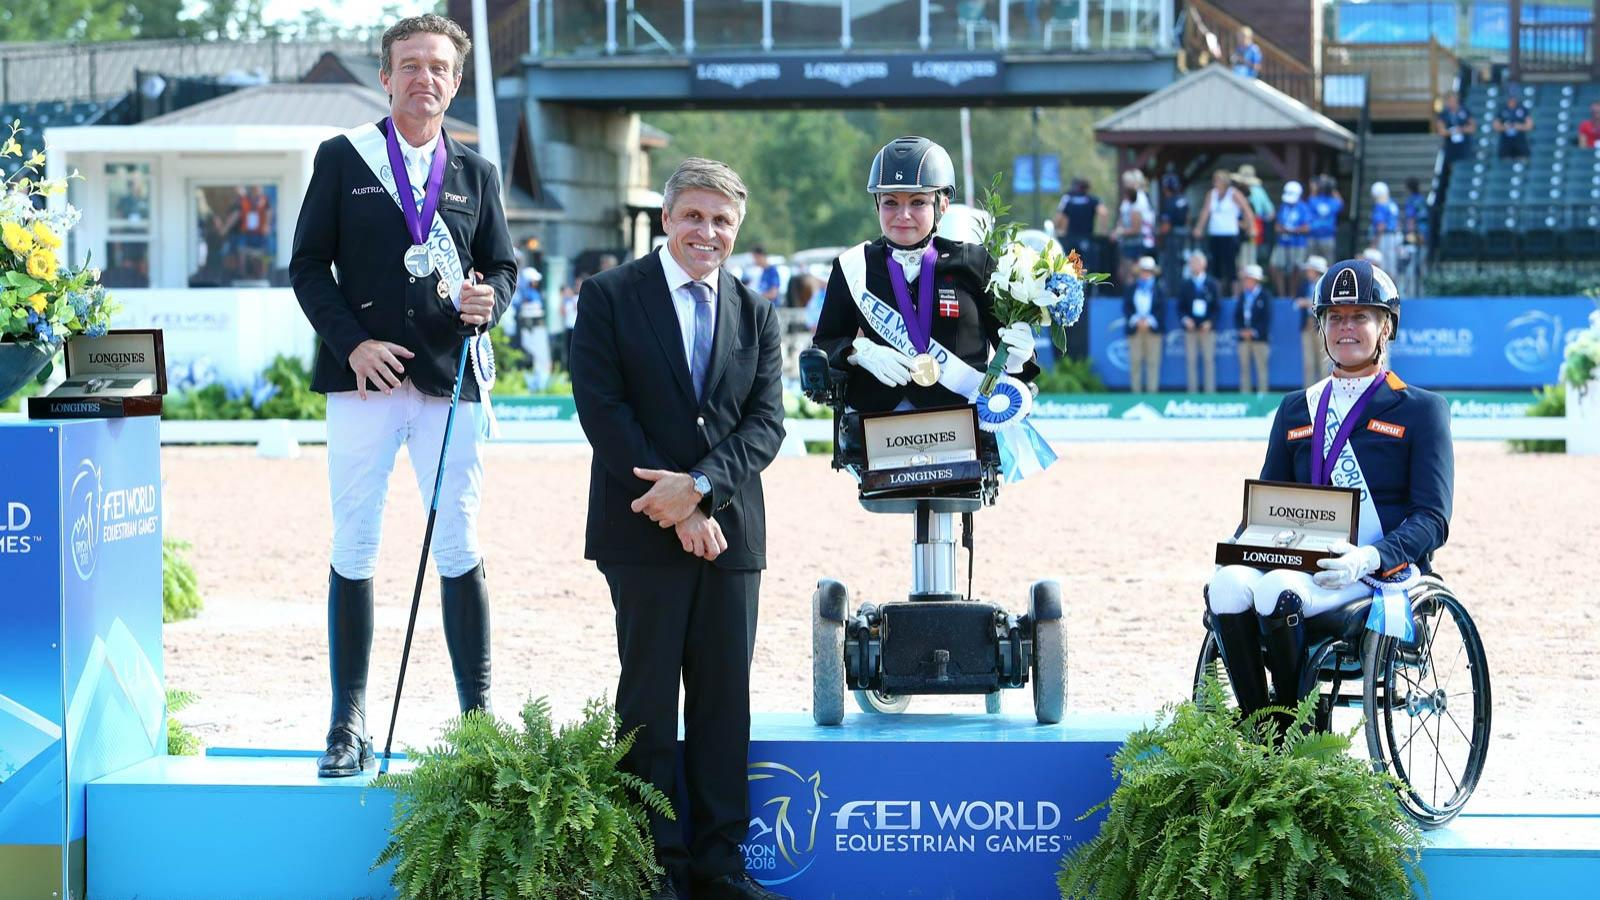 WEG, World Equestrian Games 2018, Tryon, Record Collection,pic1